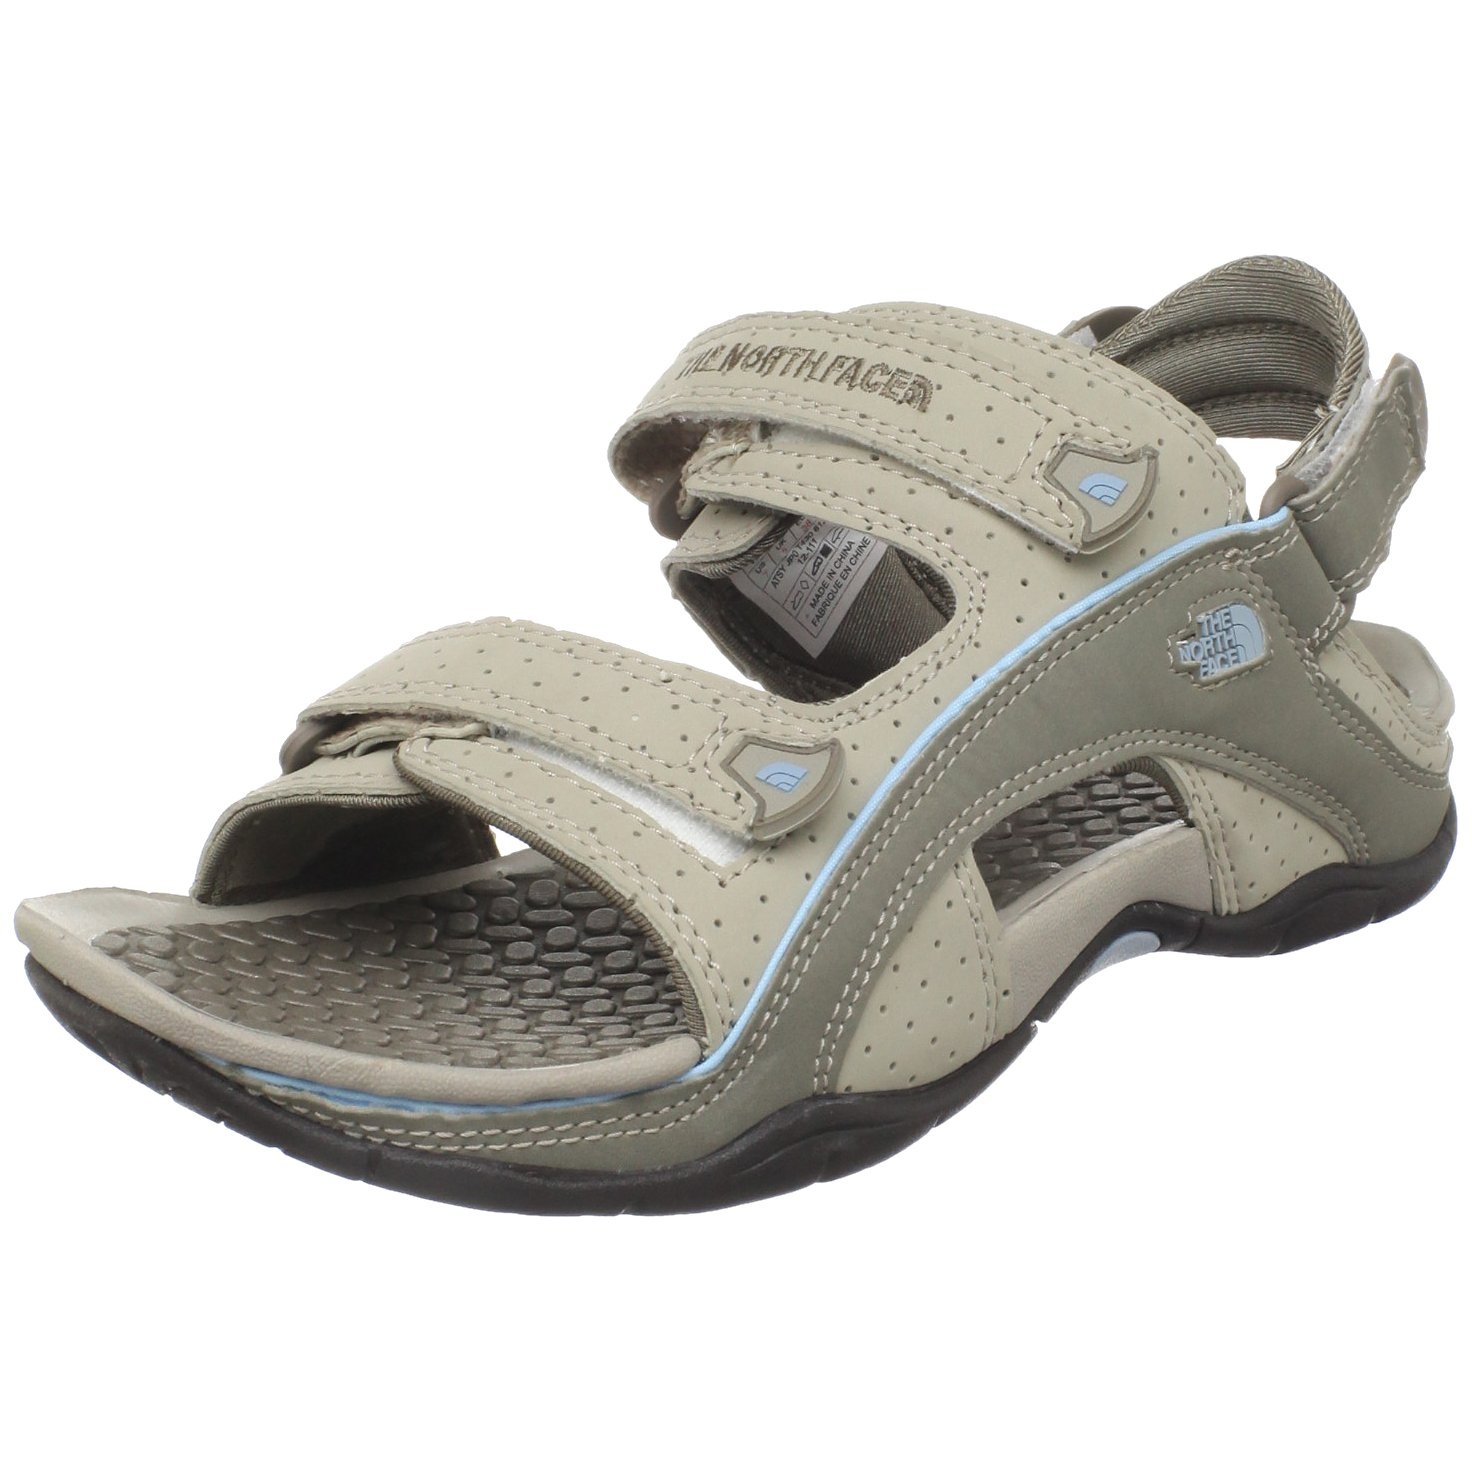 b75eb9732 THE NORTH FACE El Rio Sandal Womens: Amazon.co.uk: Sports & Outdoors